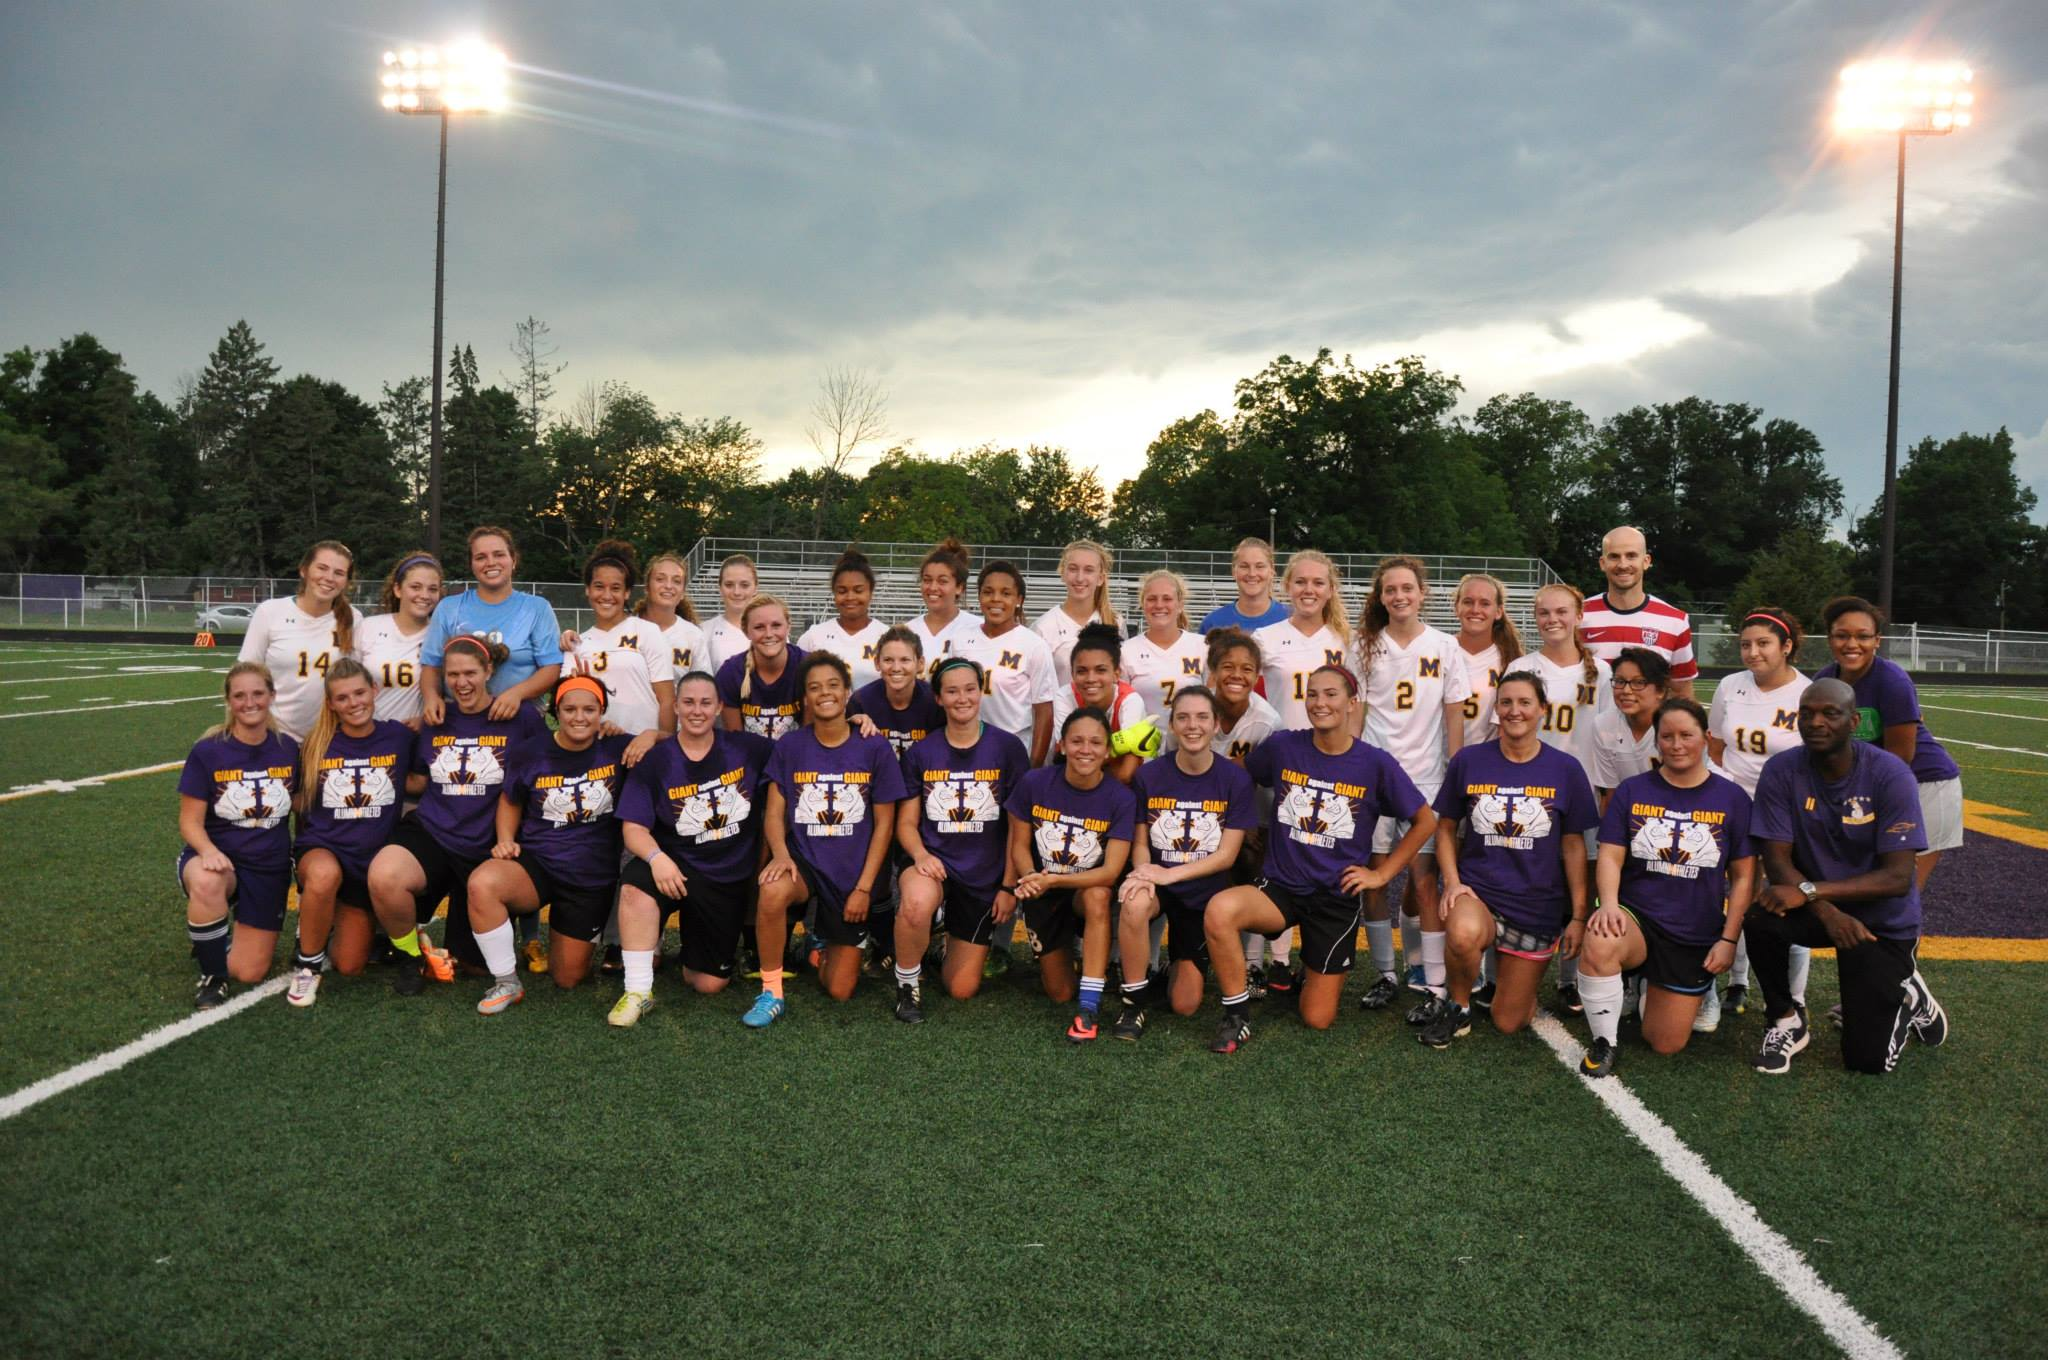 Giant Challenge girls soccer teams